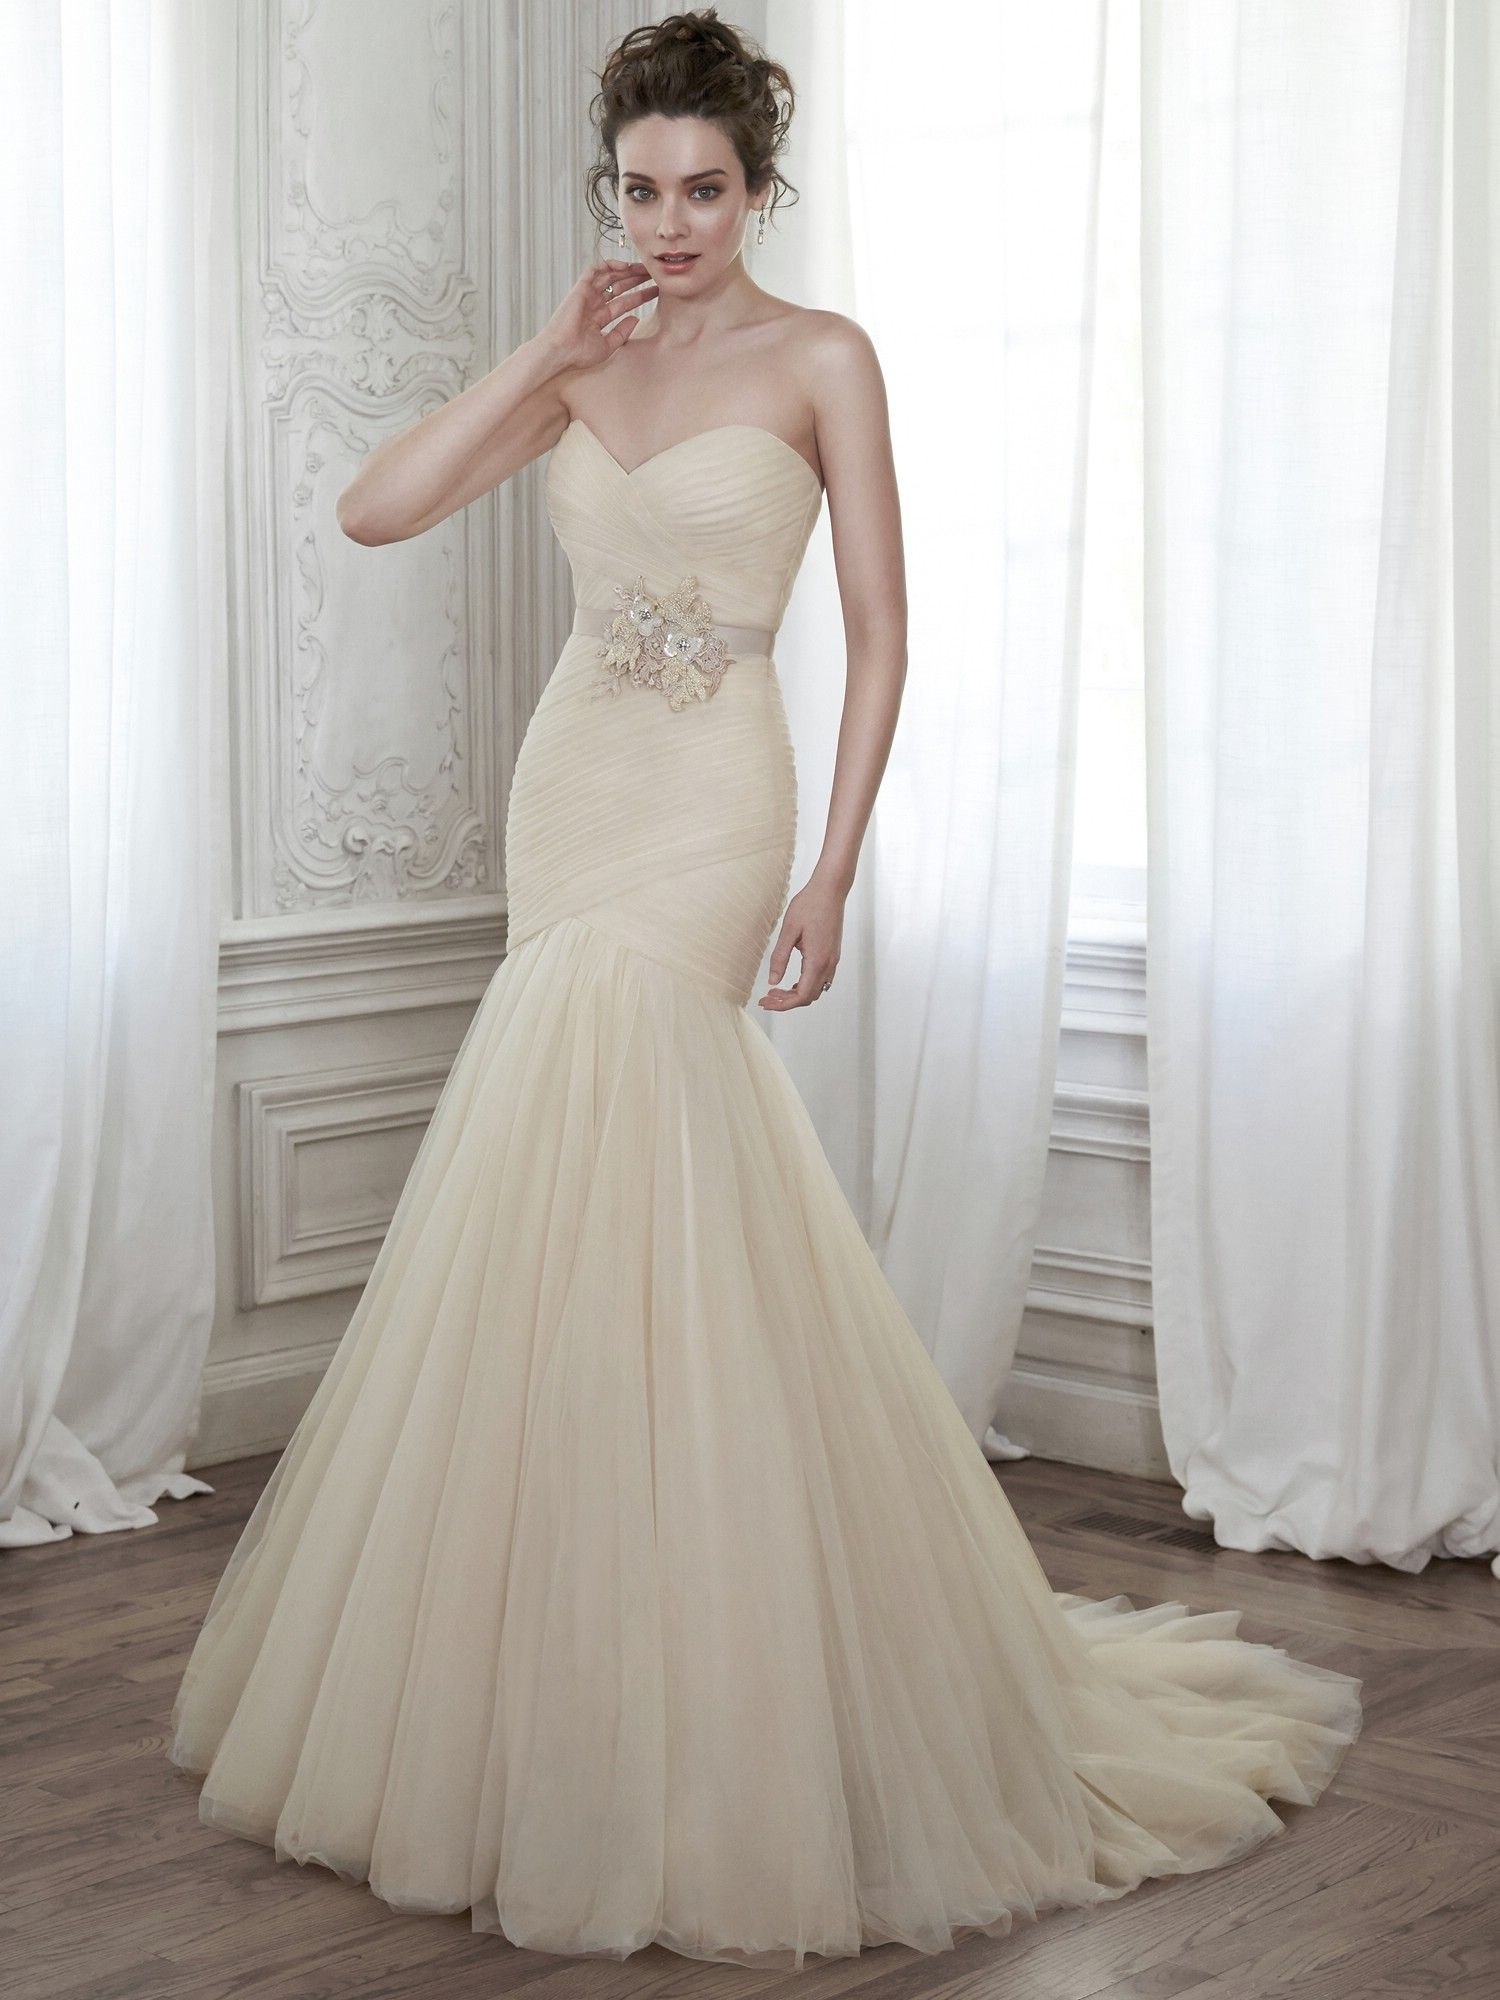 Maggie Sottero Wedding Dresses - Style Lacey with belt | Say yes to ...